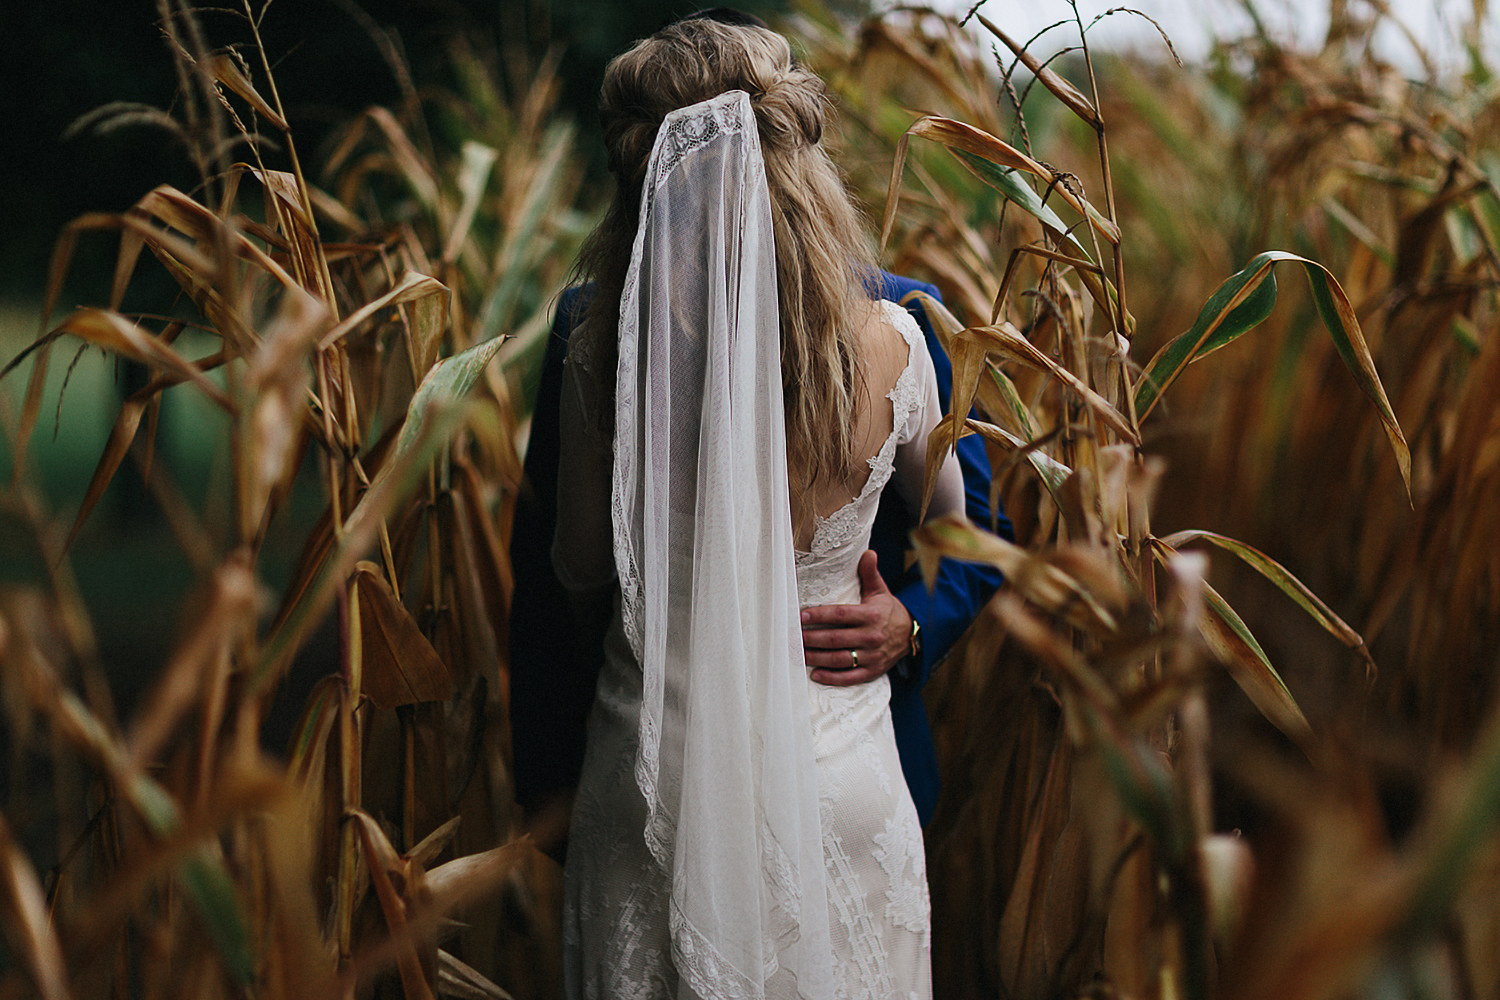 Best-Moody-Documentary-Wedding-Photography-Photojournalism-Vintage-Small-Town-Chapel-Wedding-Toronto-Ontario_Bridal-Portraits-Bride-and-groom-vintage-candid-portrait-in-cornfield.jpg